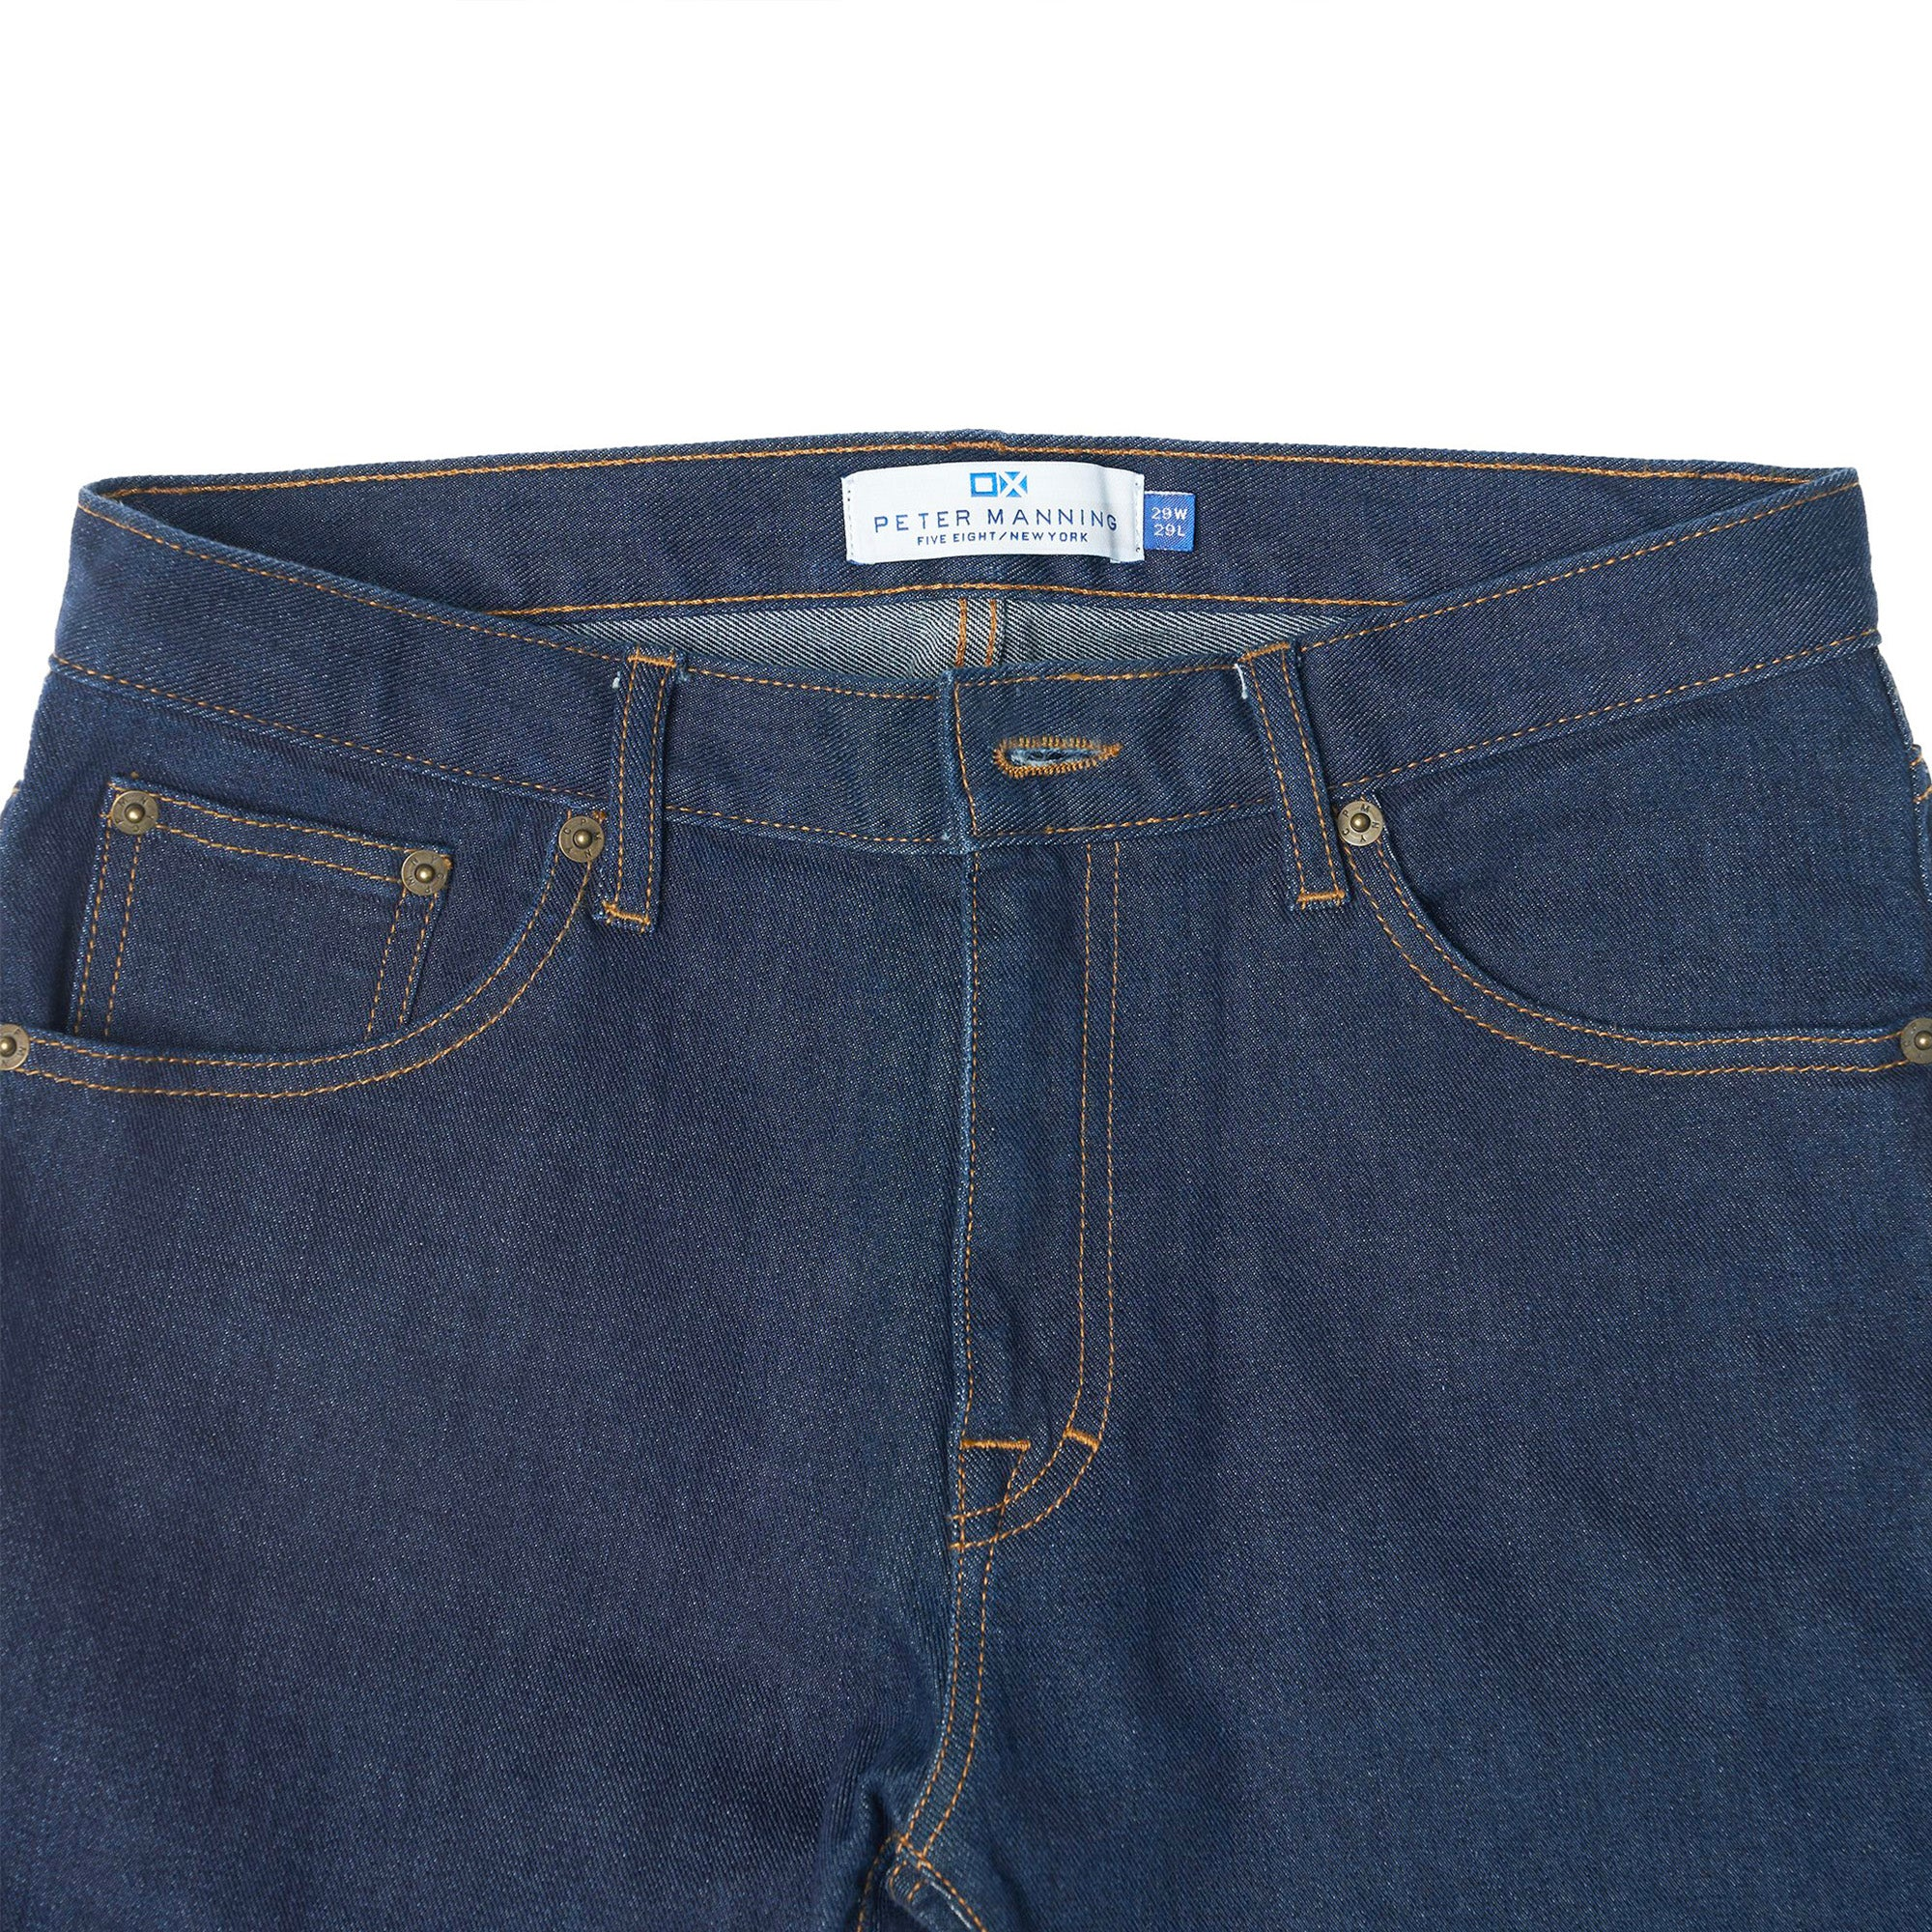 PMNYC Jeans Slim Fit - Dark Indigo Wash